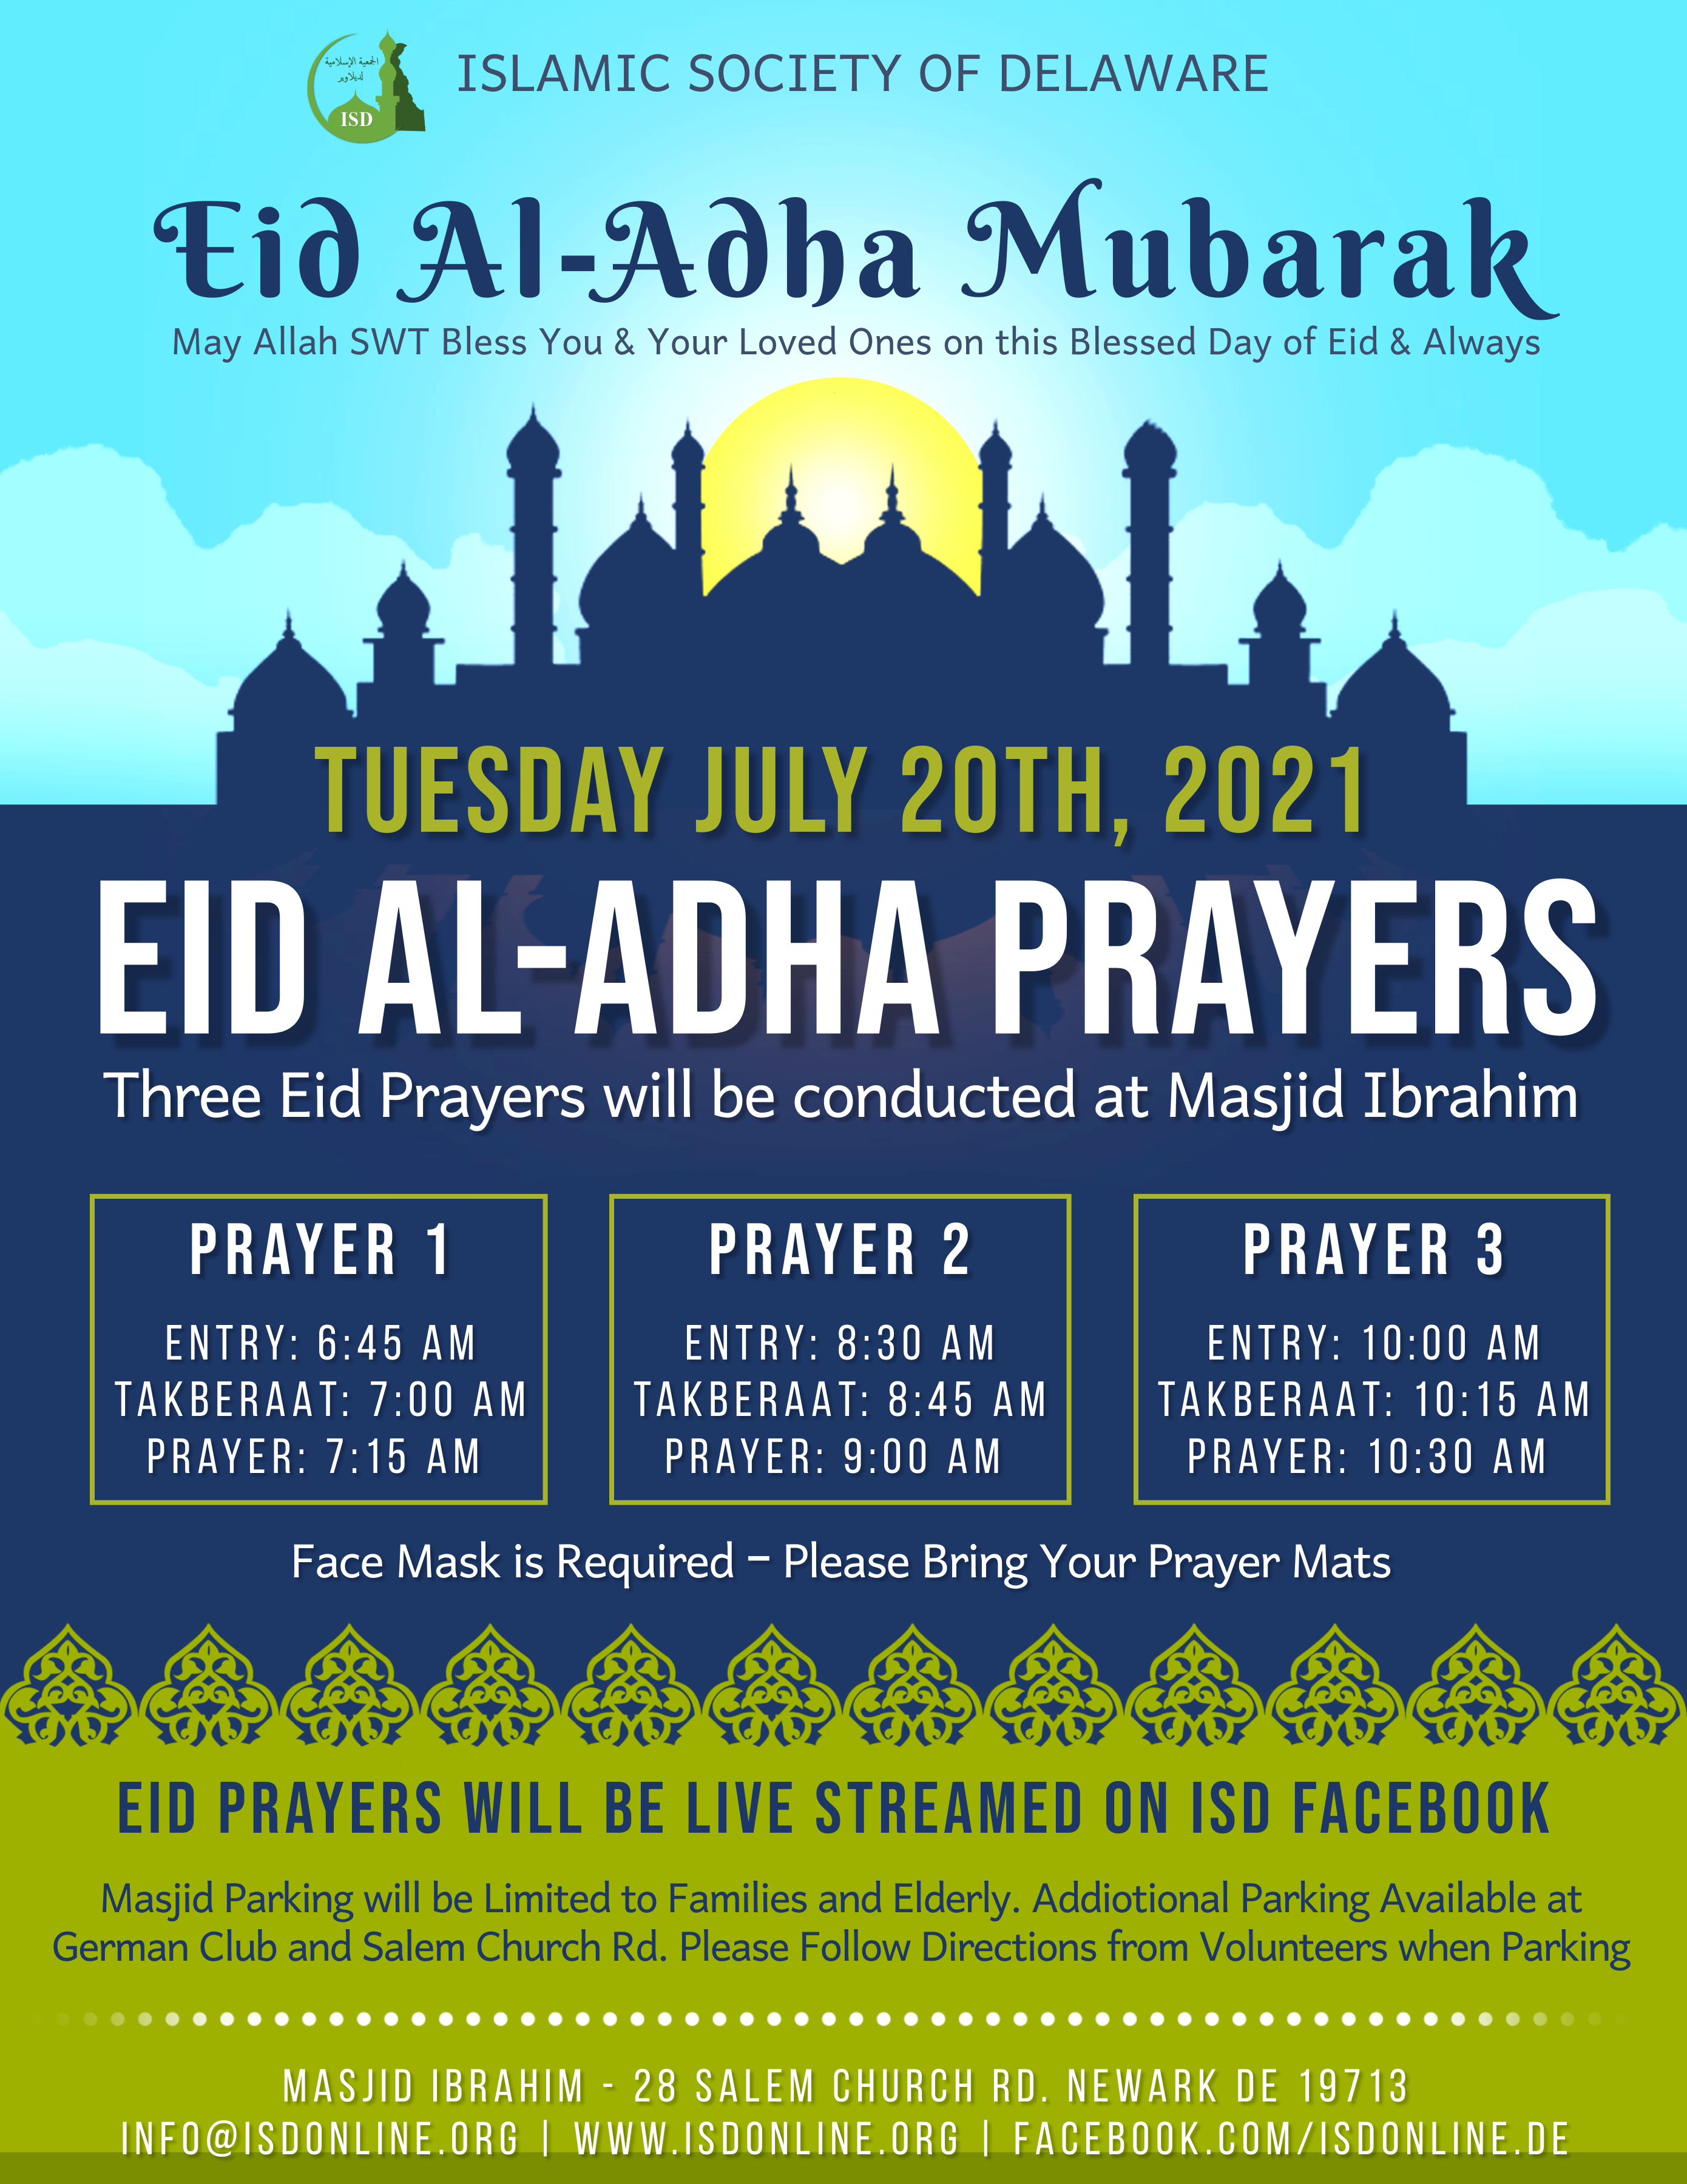 Eid Al-Adha to be Celebrated on Tuesday, July 20th